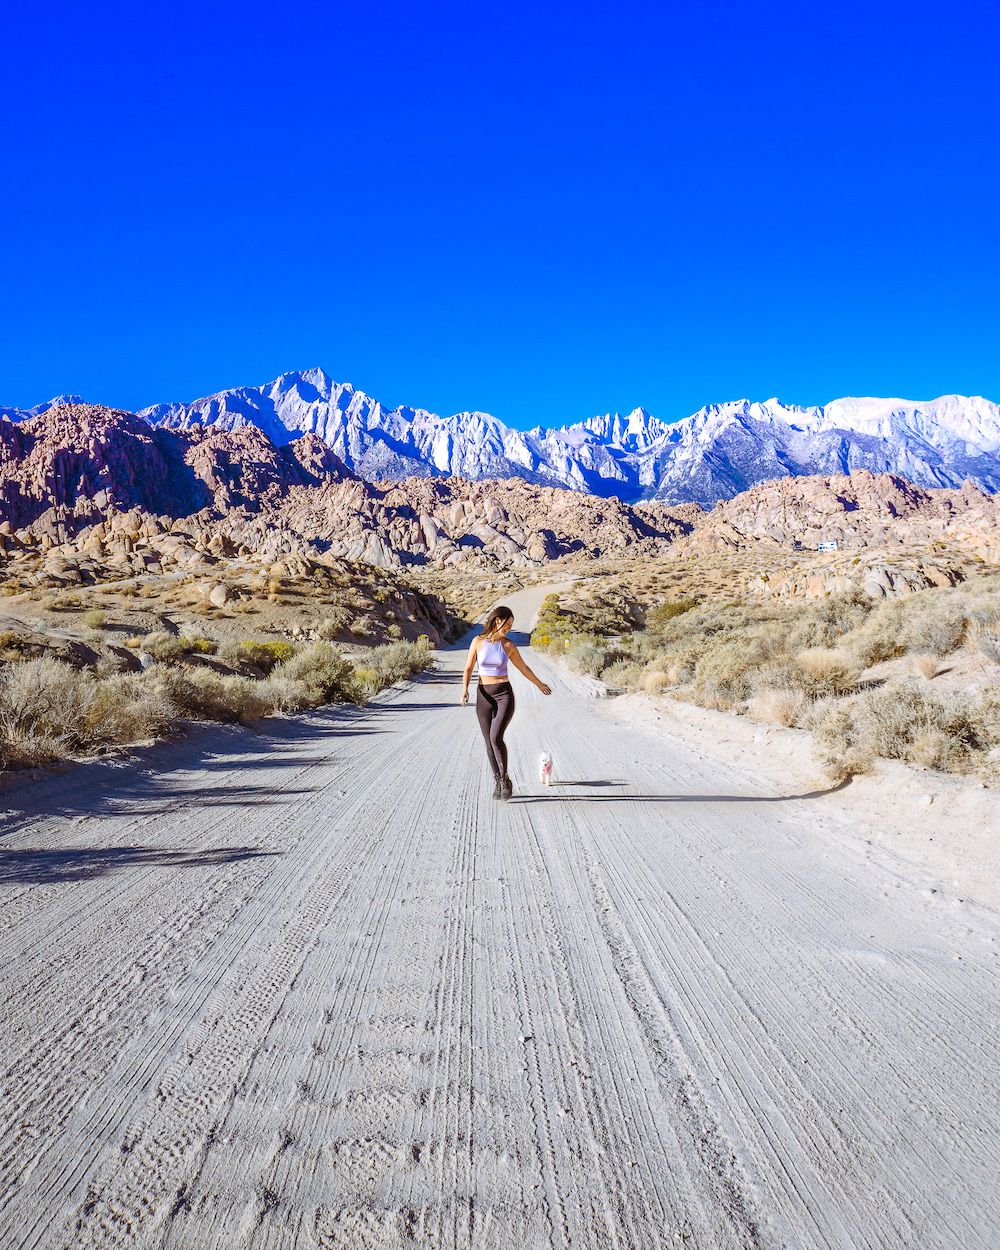 woman and dog outdoors on dirt road with mountains in background